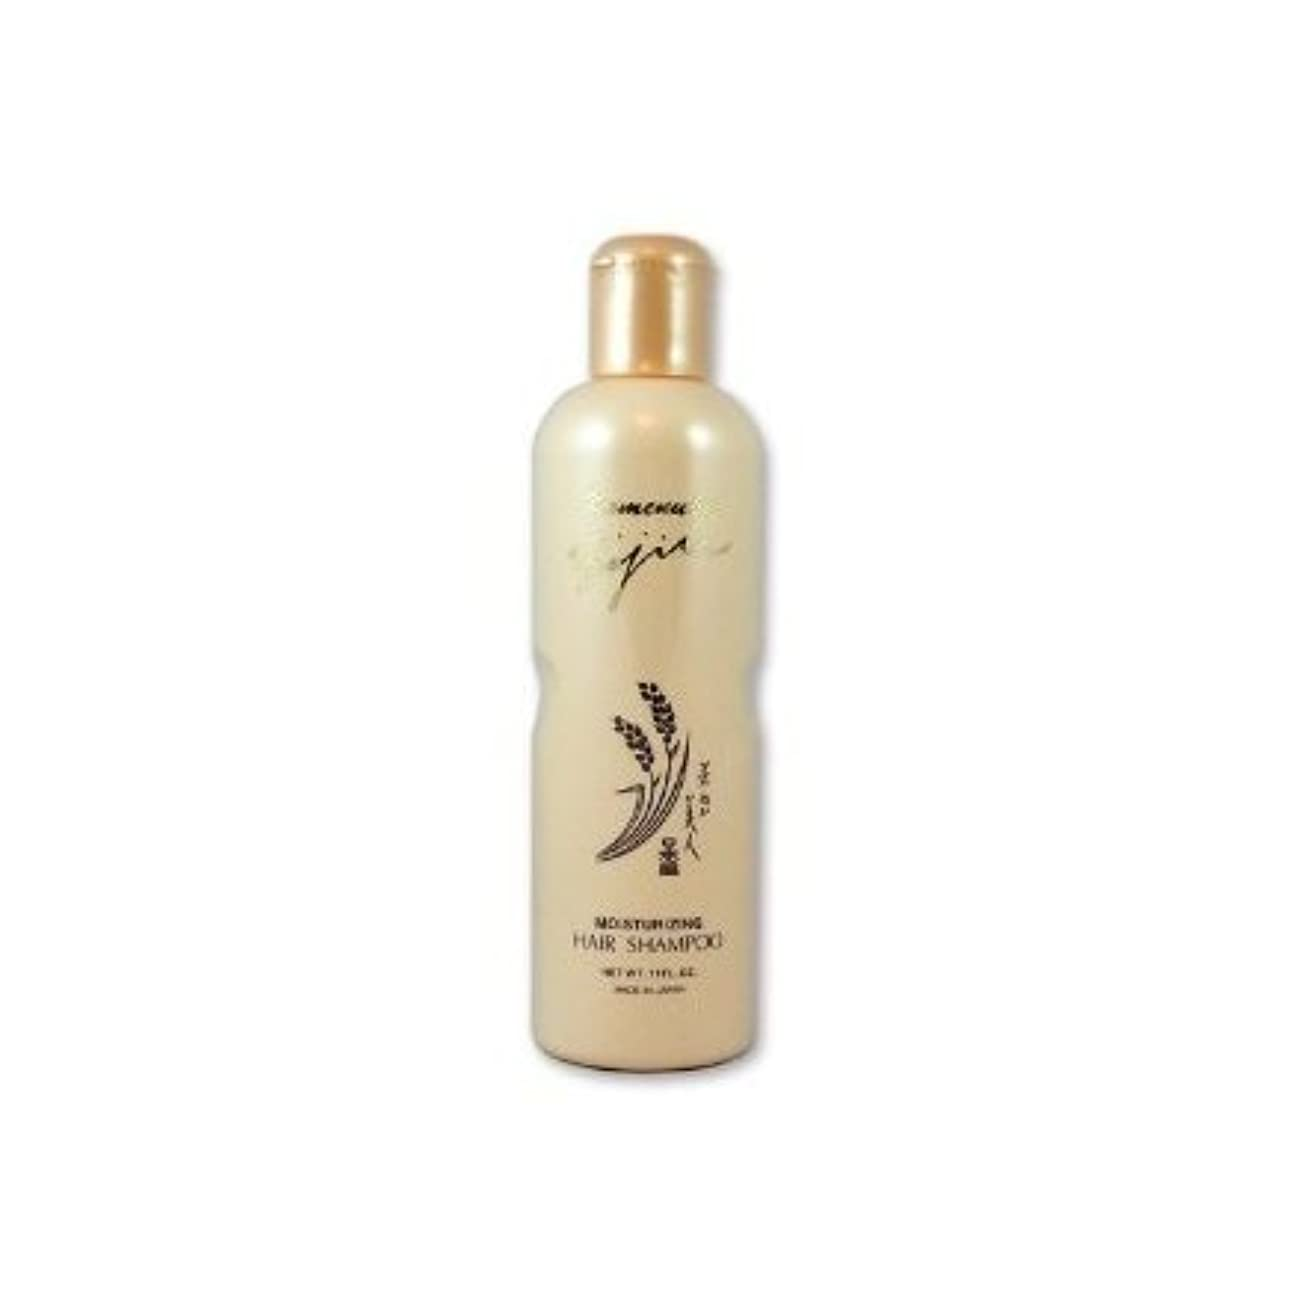 等しいまつげ困難Komenuka Bijin Moisturizing Hair Shampoo With Natural Rice Bran - 11 Fl Oz by KOMENUKA BIJIN / NS-K